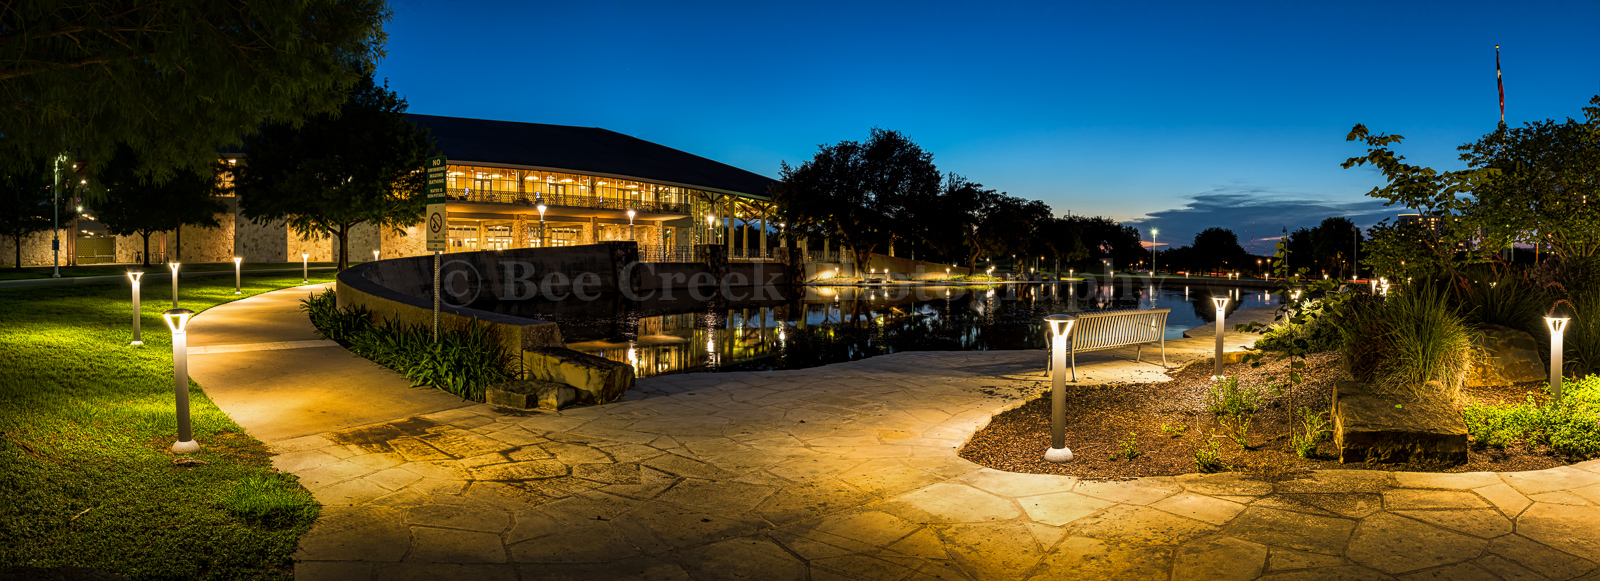 Austin, Long Center, Palmer Event Center, dusk, night, water feature, pool, path, lit, downtown, Austin, lights, reflections, architecture, buildings, pano, panorama,, photo